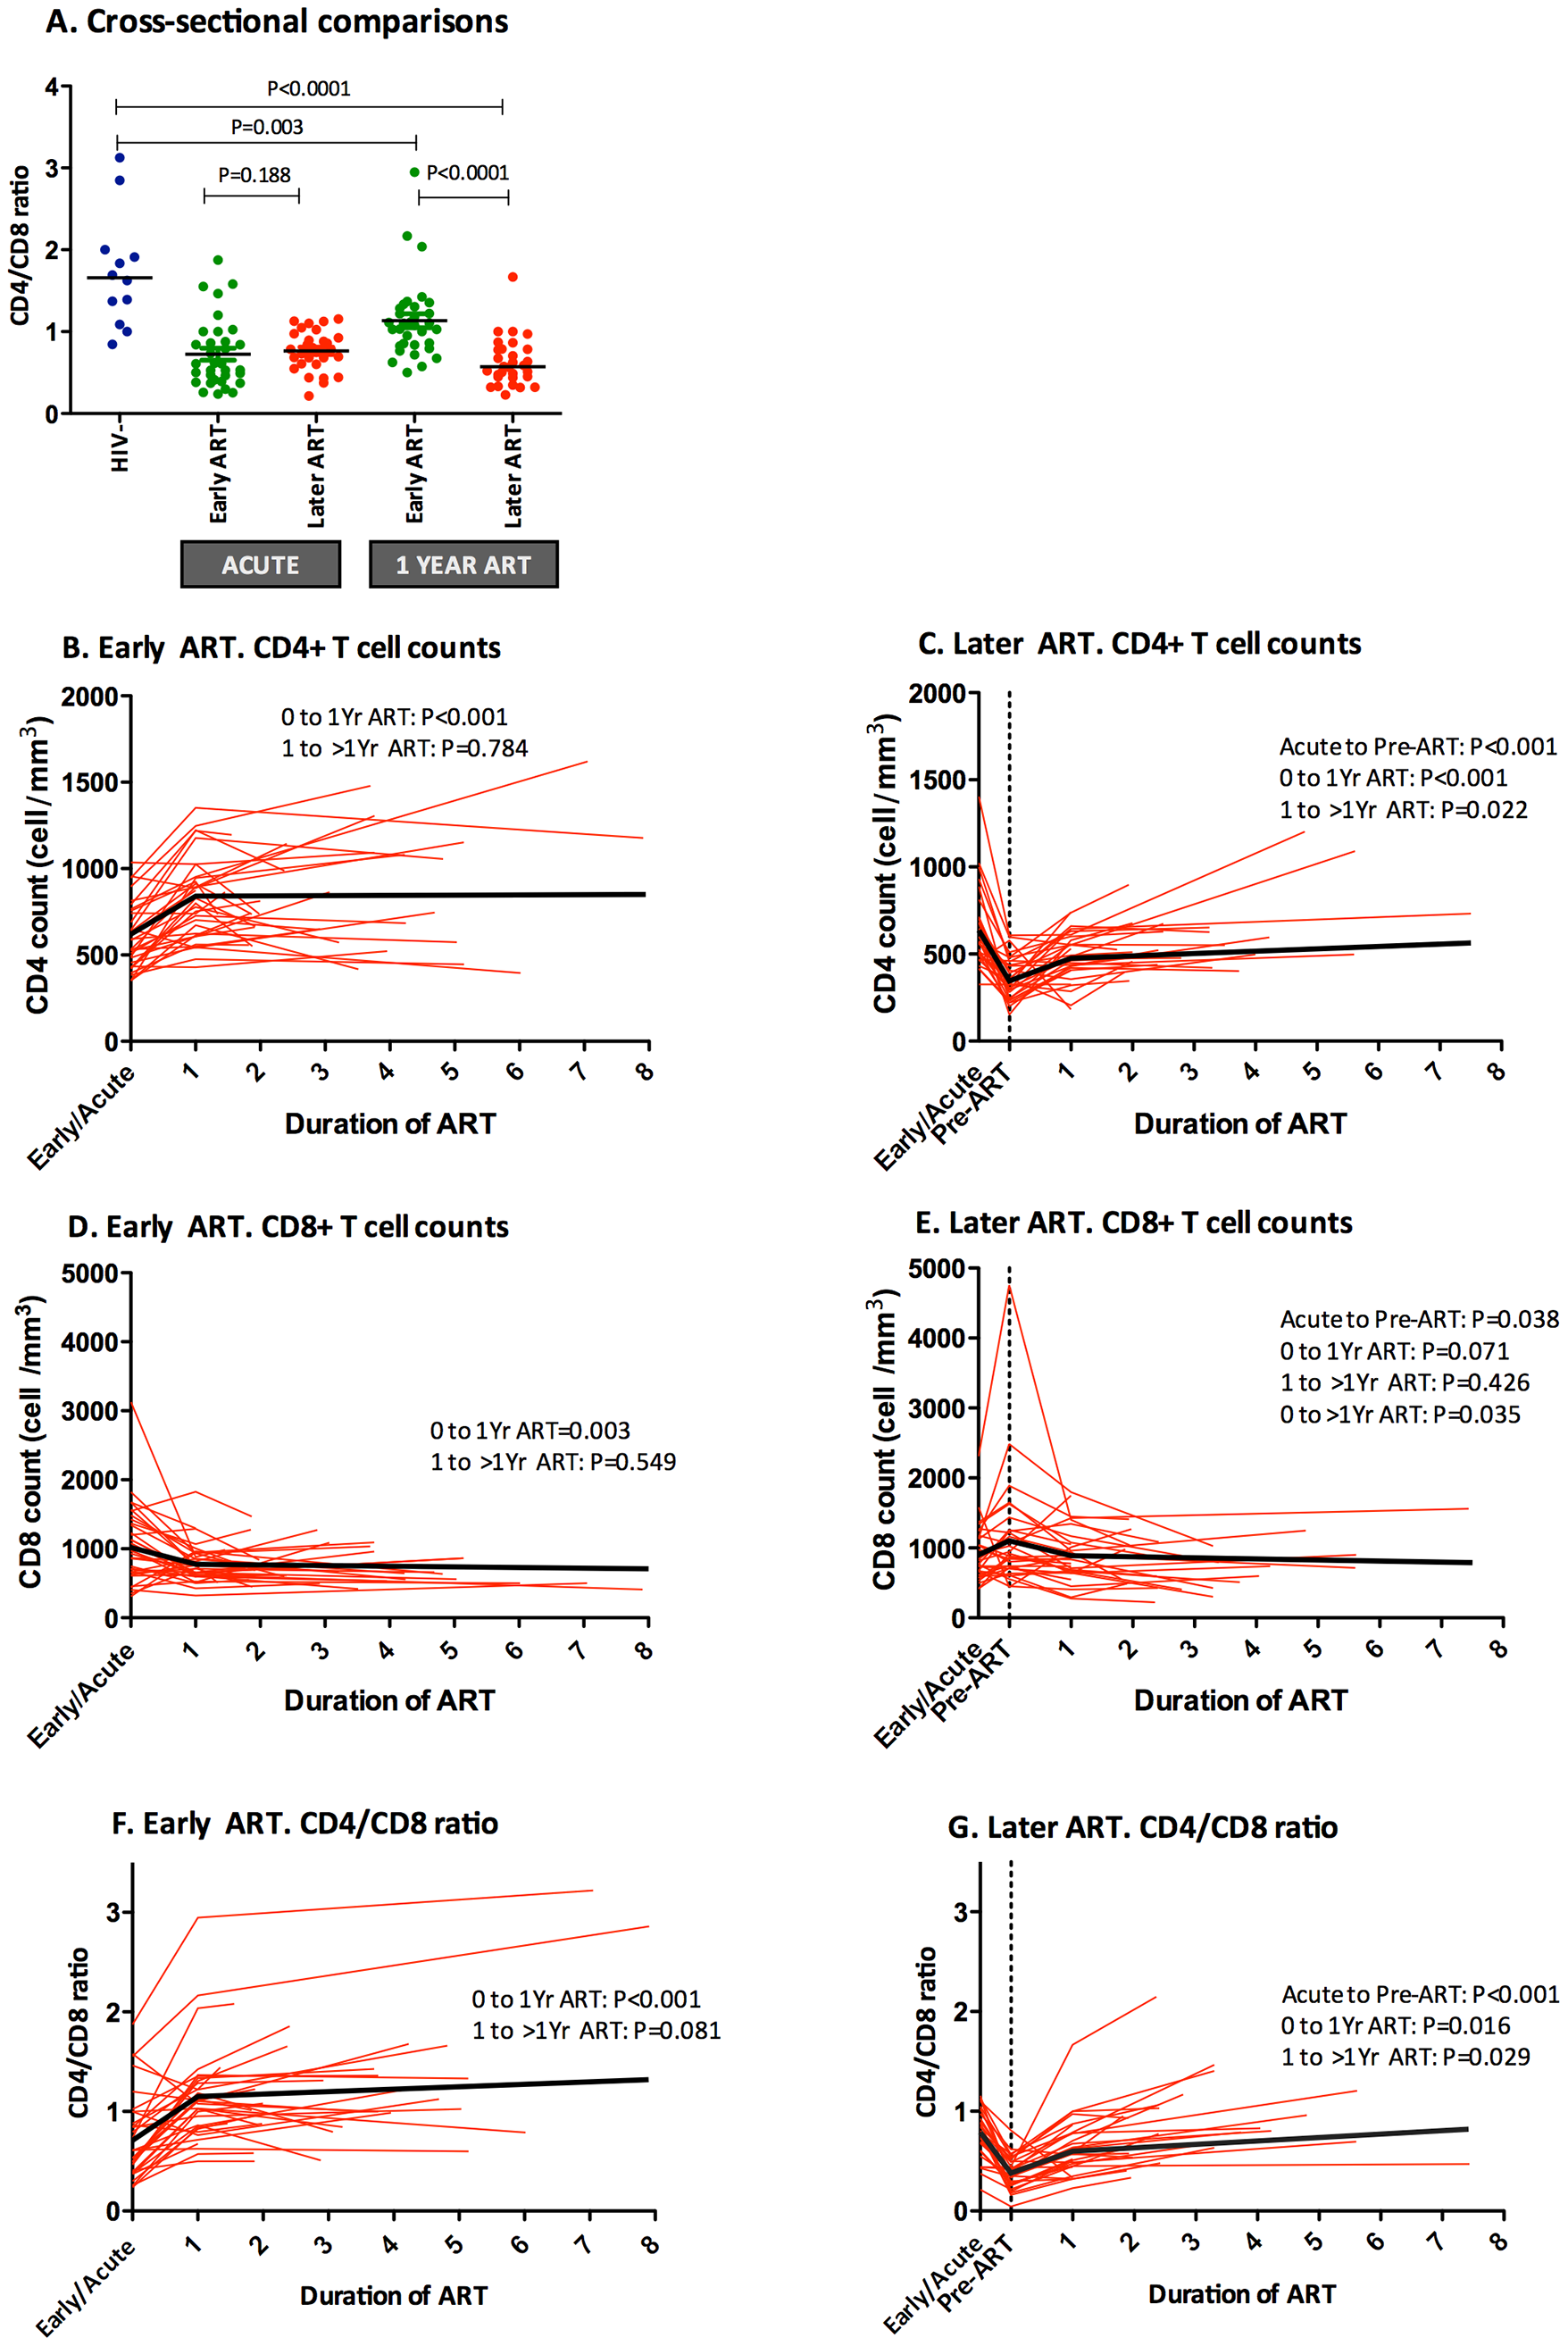 Impact of early or later ART initiation in peripheral CD4+ T cell counts, CD8+ T cell counts and CD4/CD8 ratio in the OPTIONS cohort.